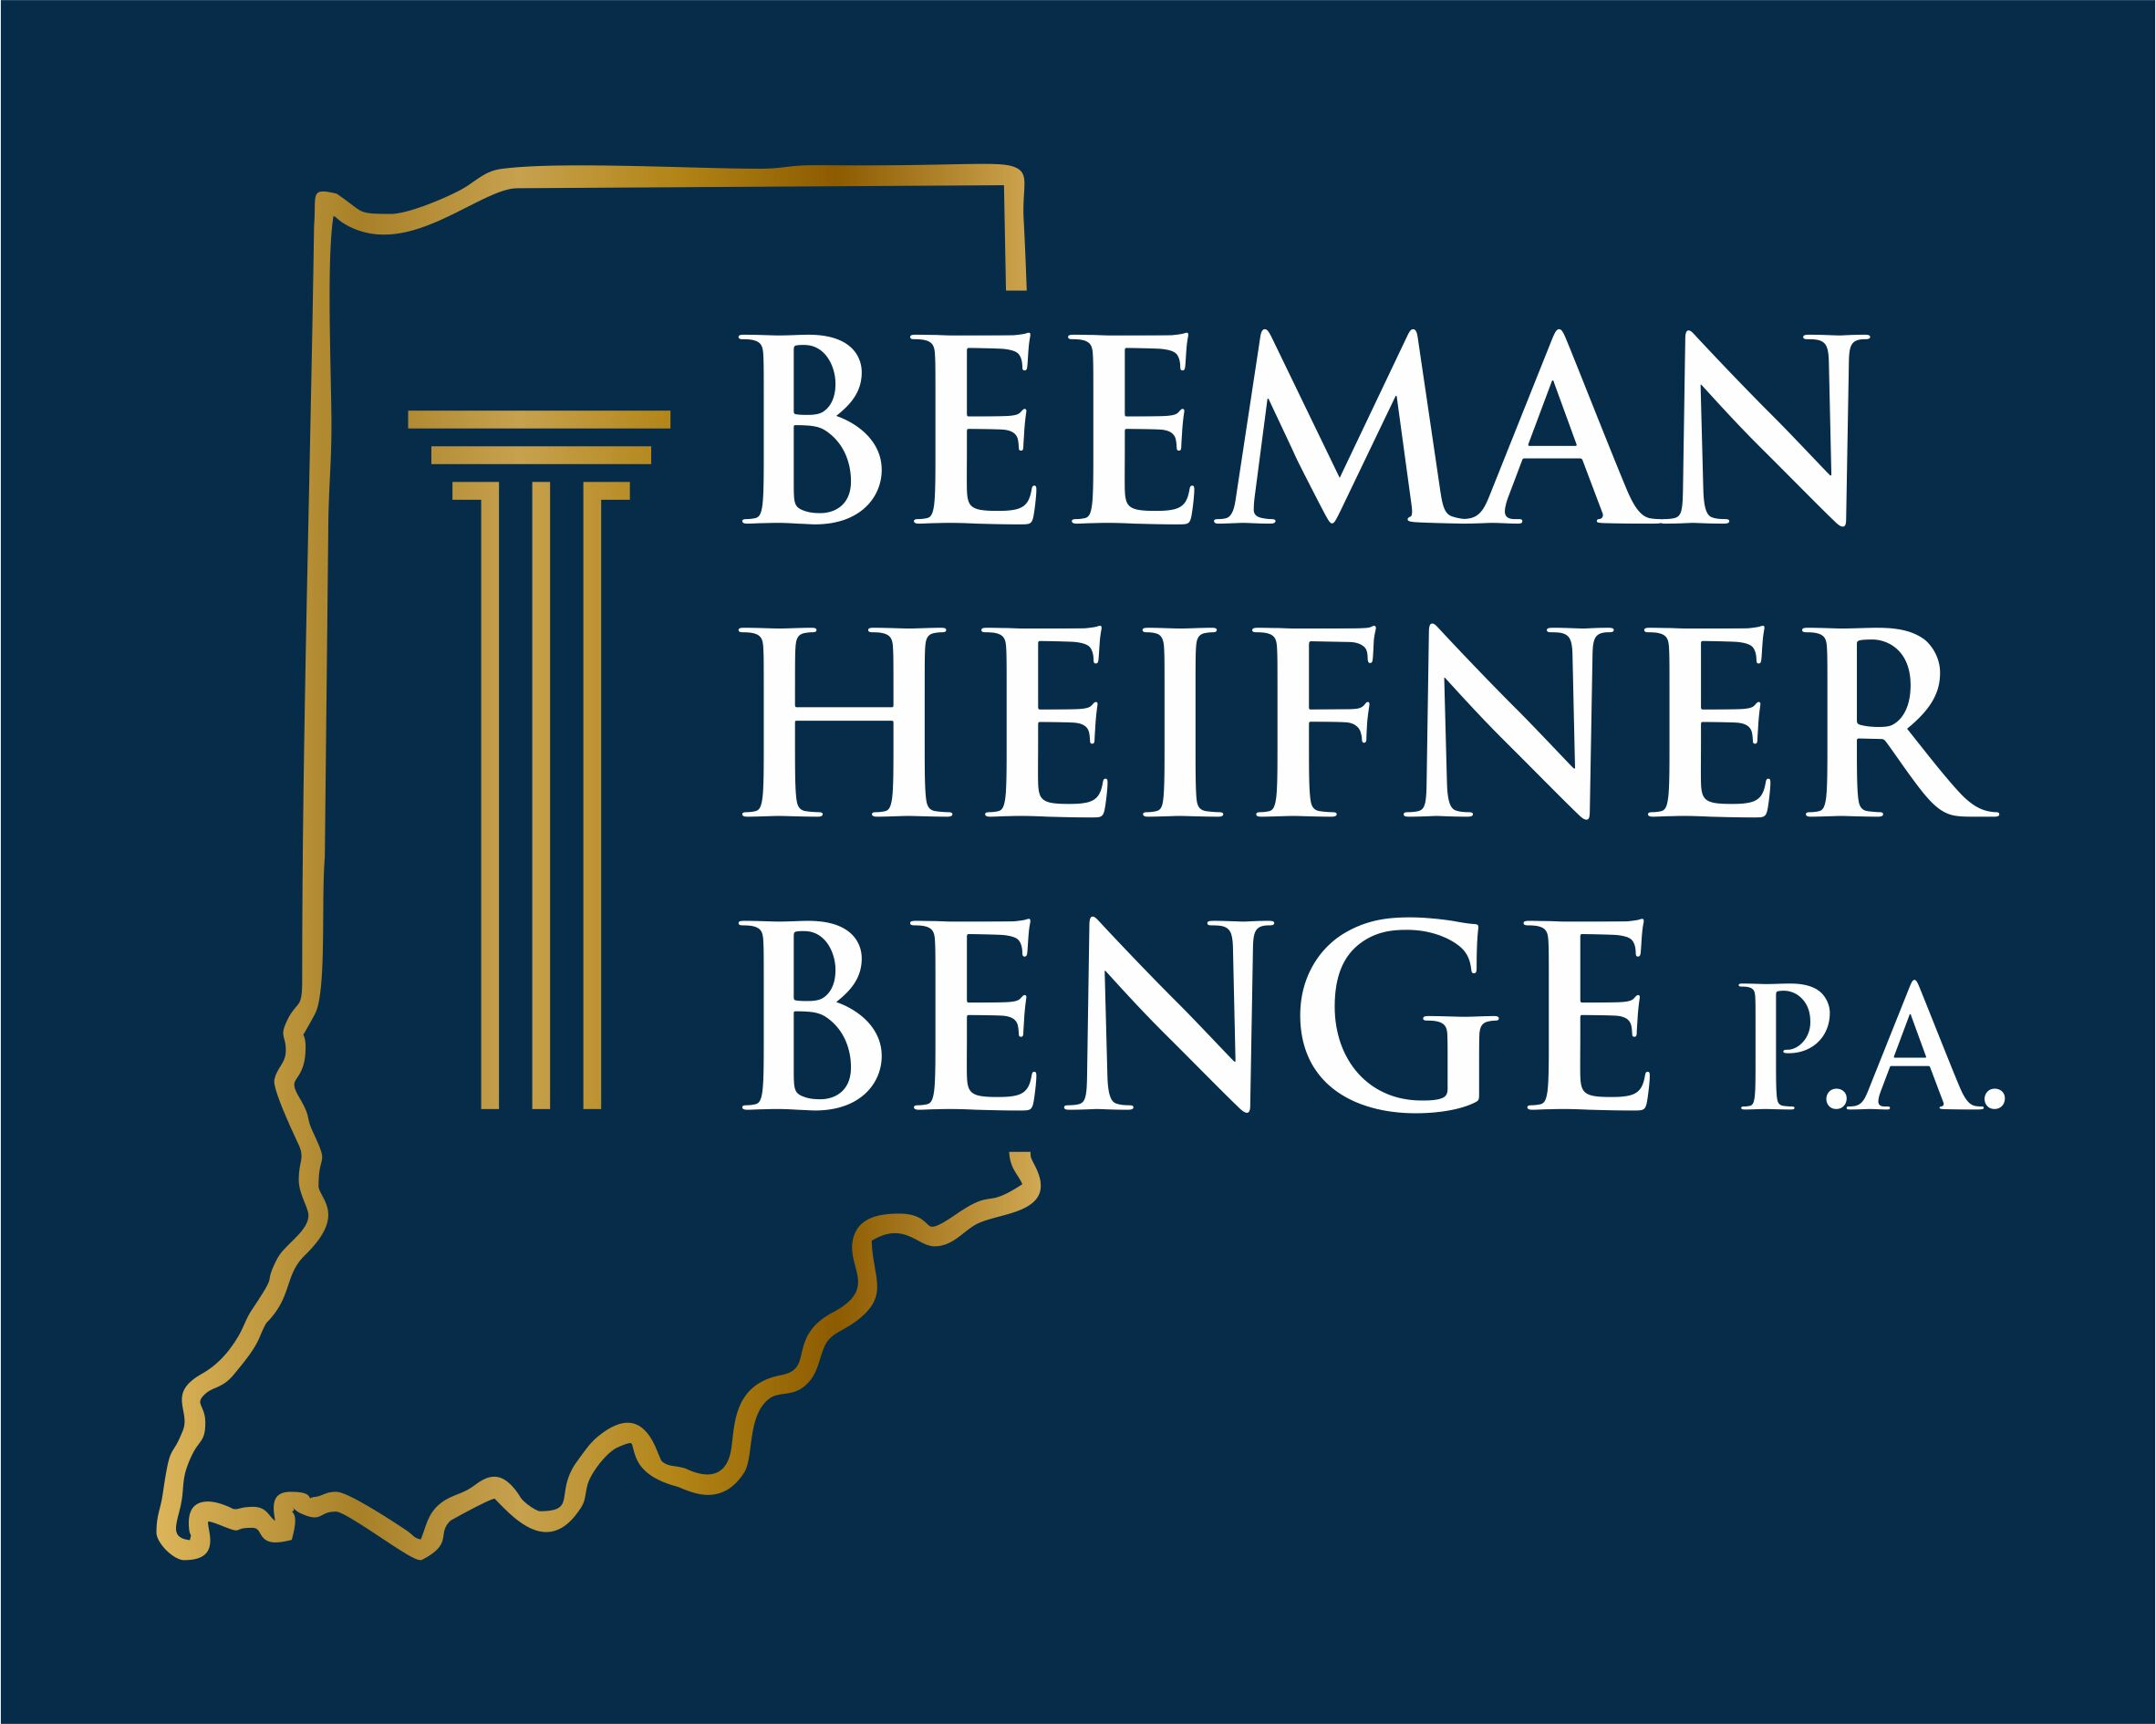 The Law Firm of Beeman Heifner Benge Announces Expanded Legal Services in Indianapolis